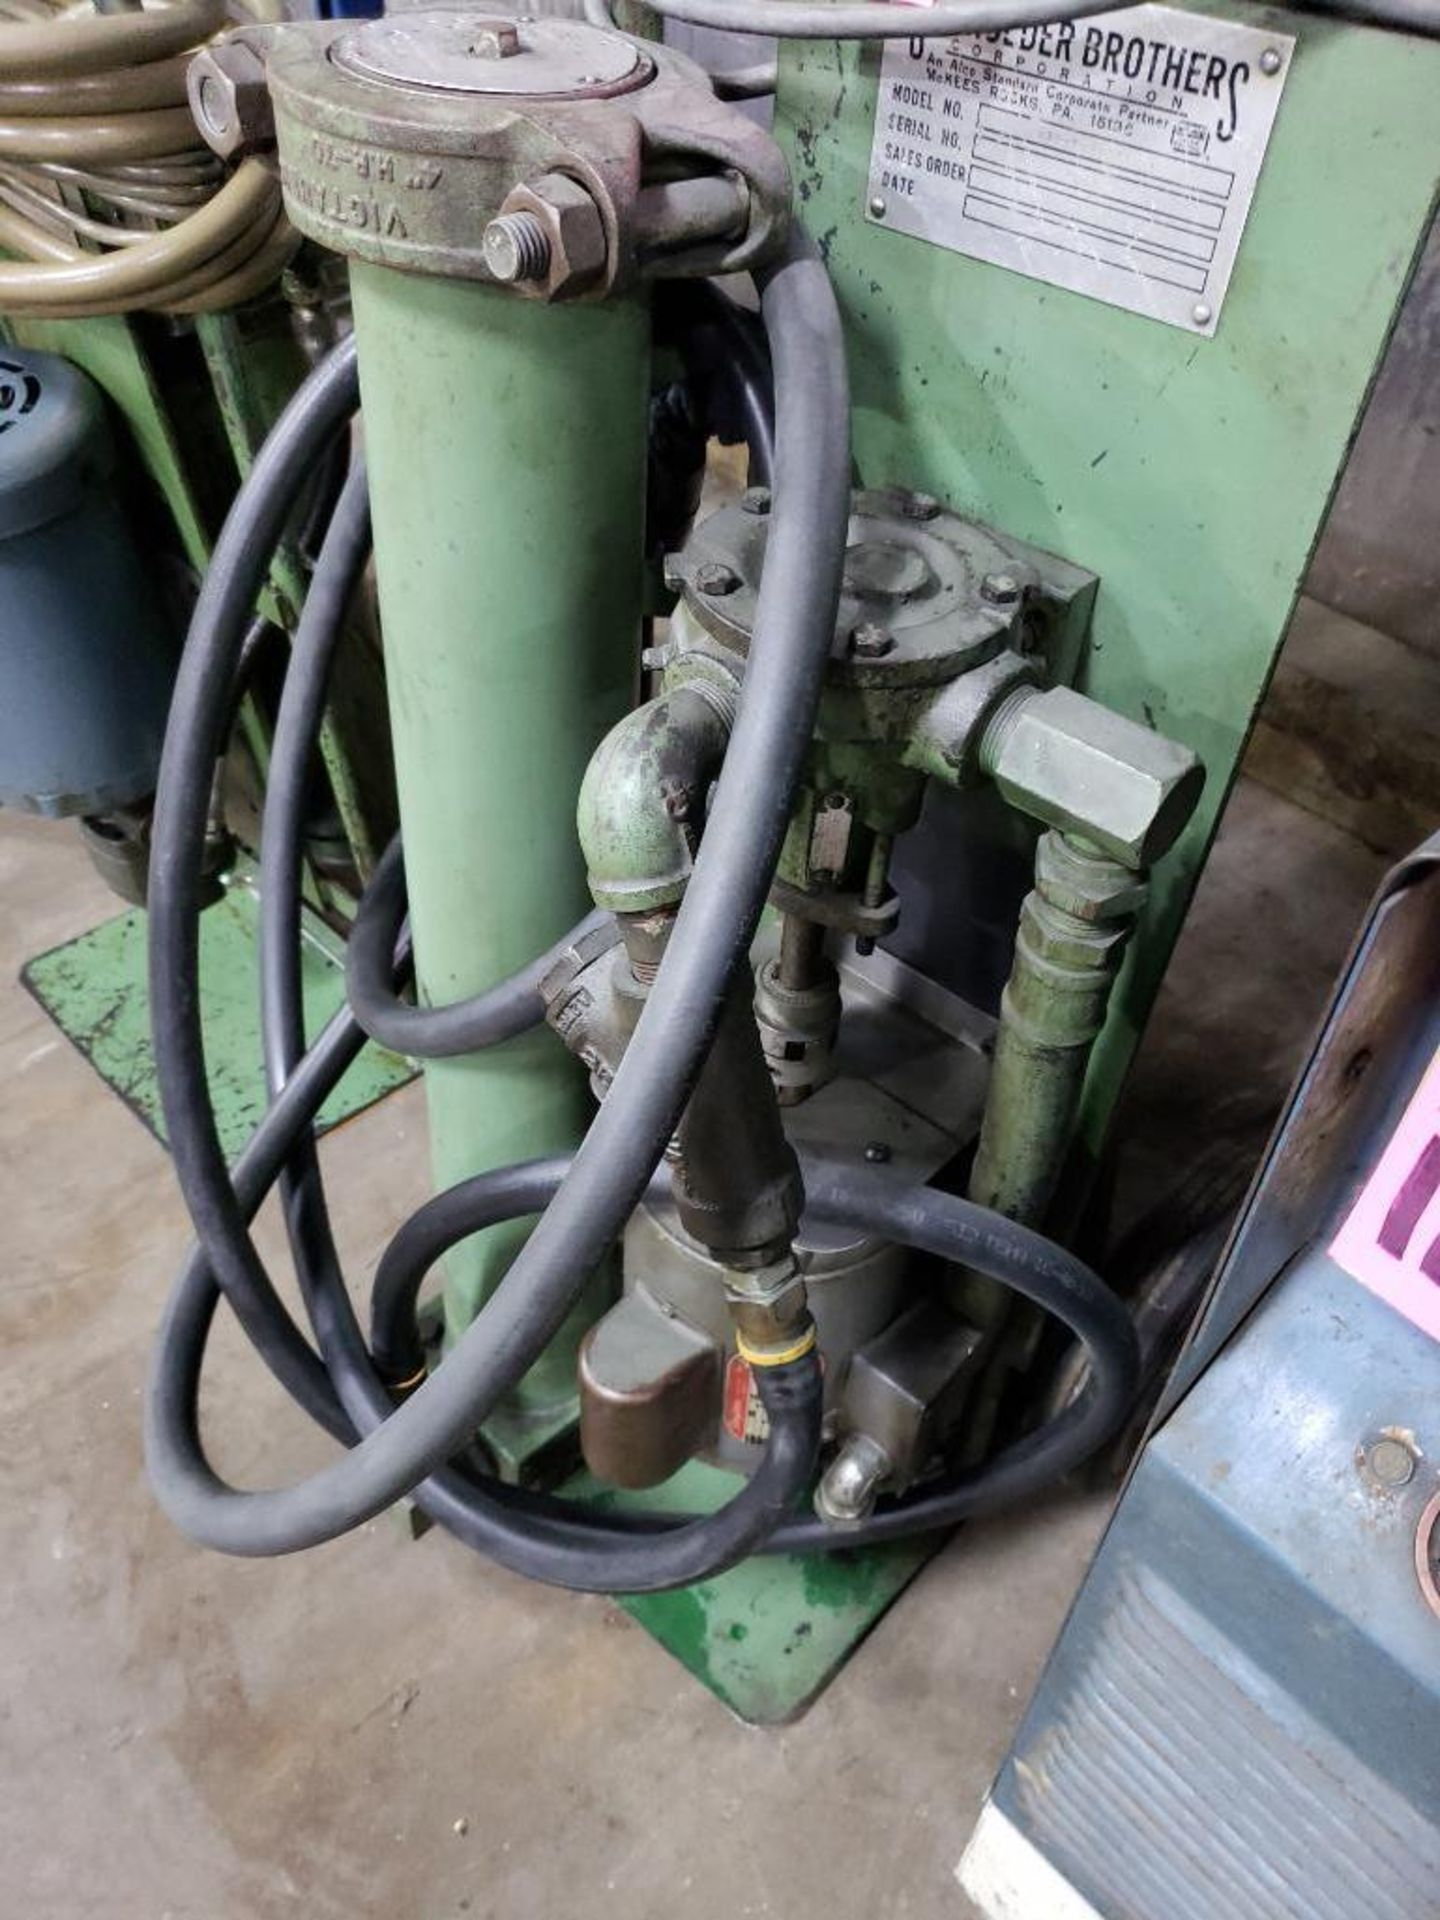 Lot 115 - Schroeder Brothers hydraulic fluid filtration unit.